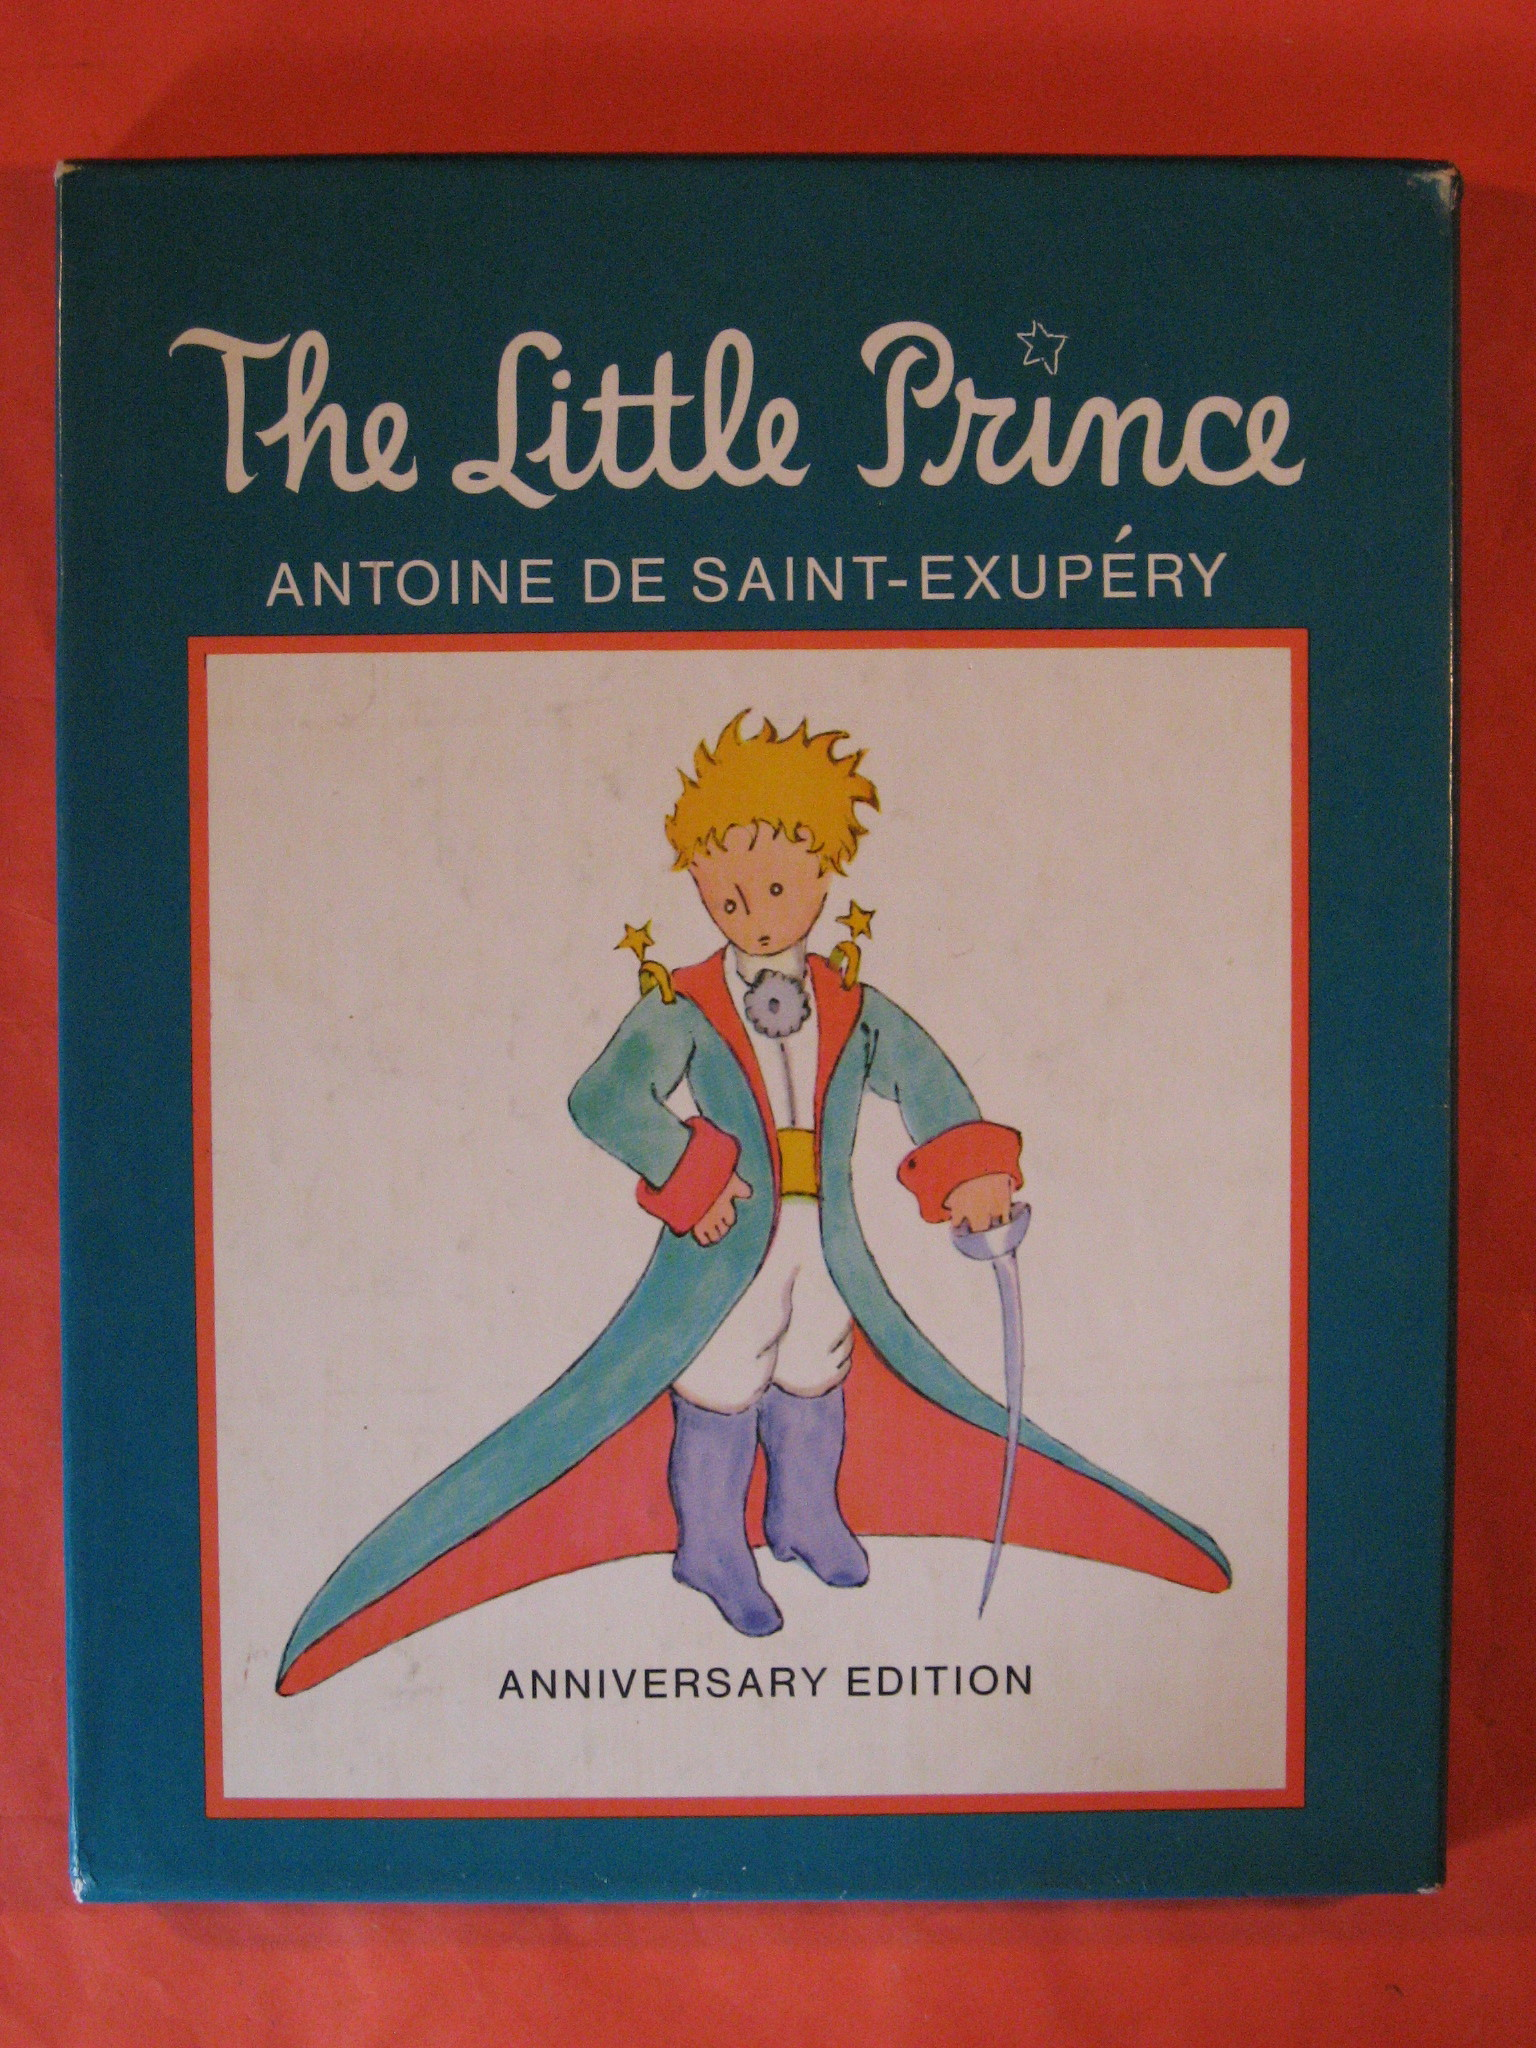 Little Prince (Anniversary Edition), The